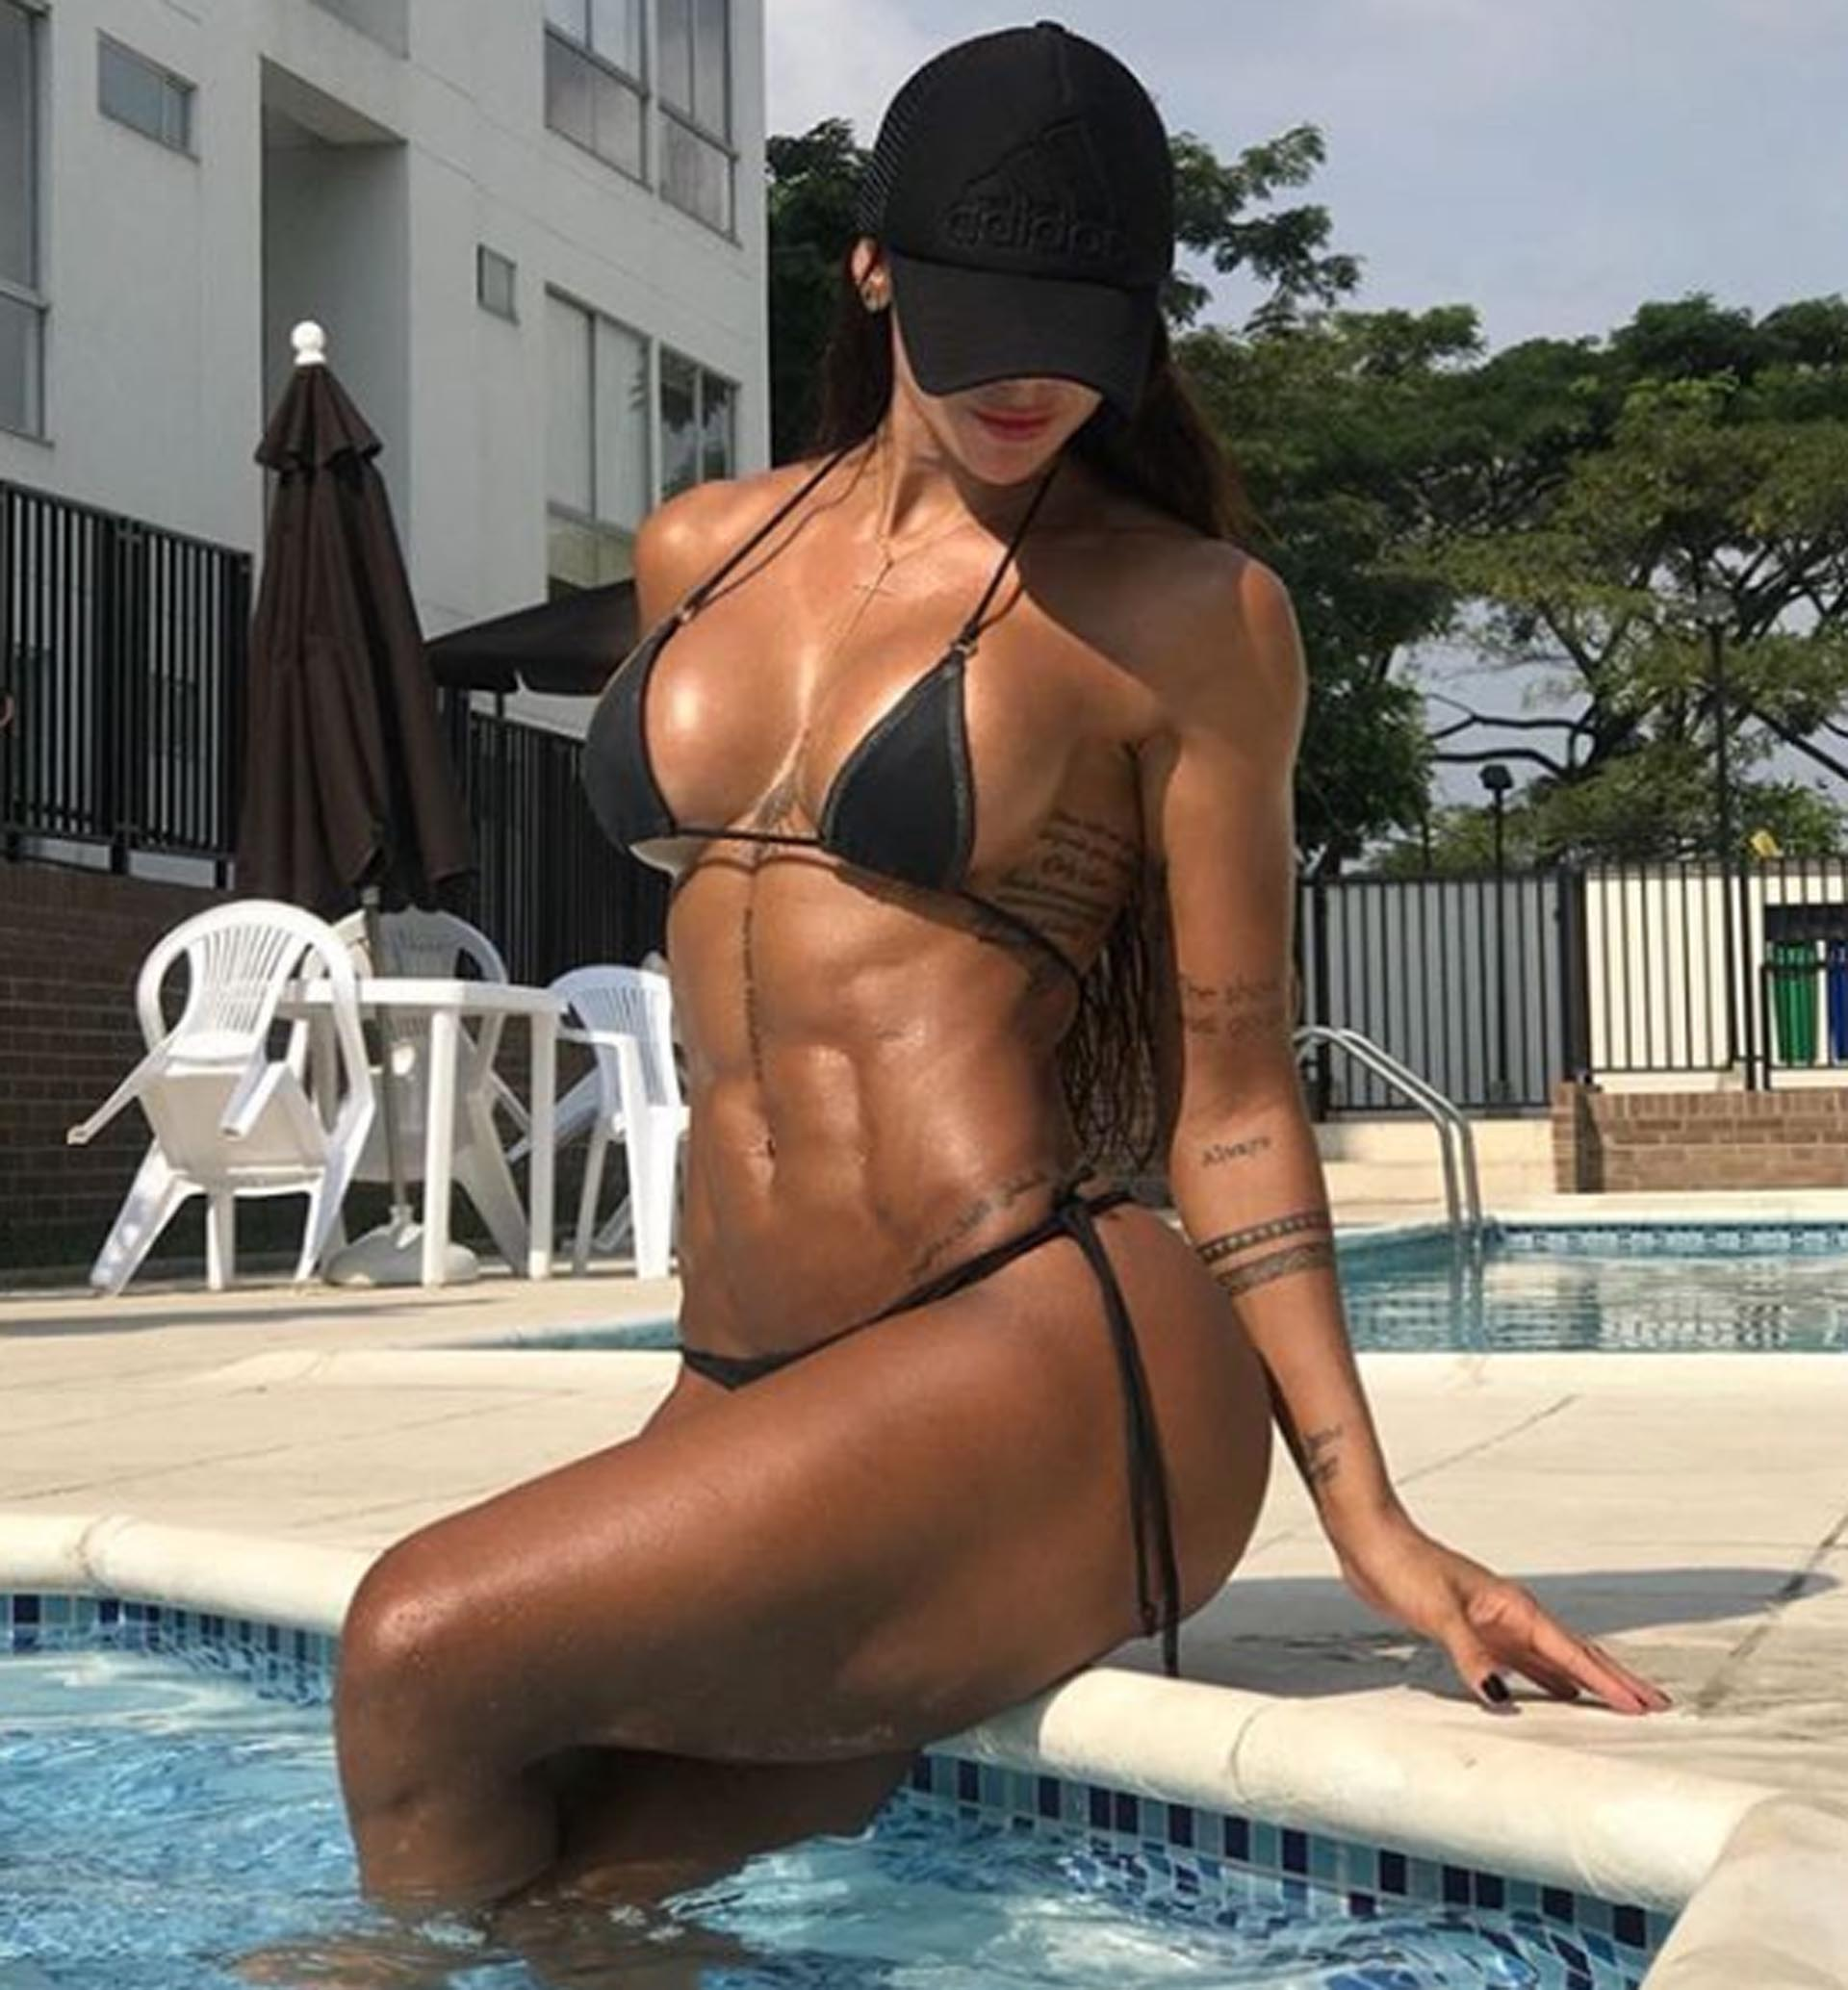 Sonia Isaza Hot Bikini Pool Pose - Sonia Isaza Hot Bikini Pool Pose